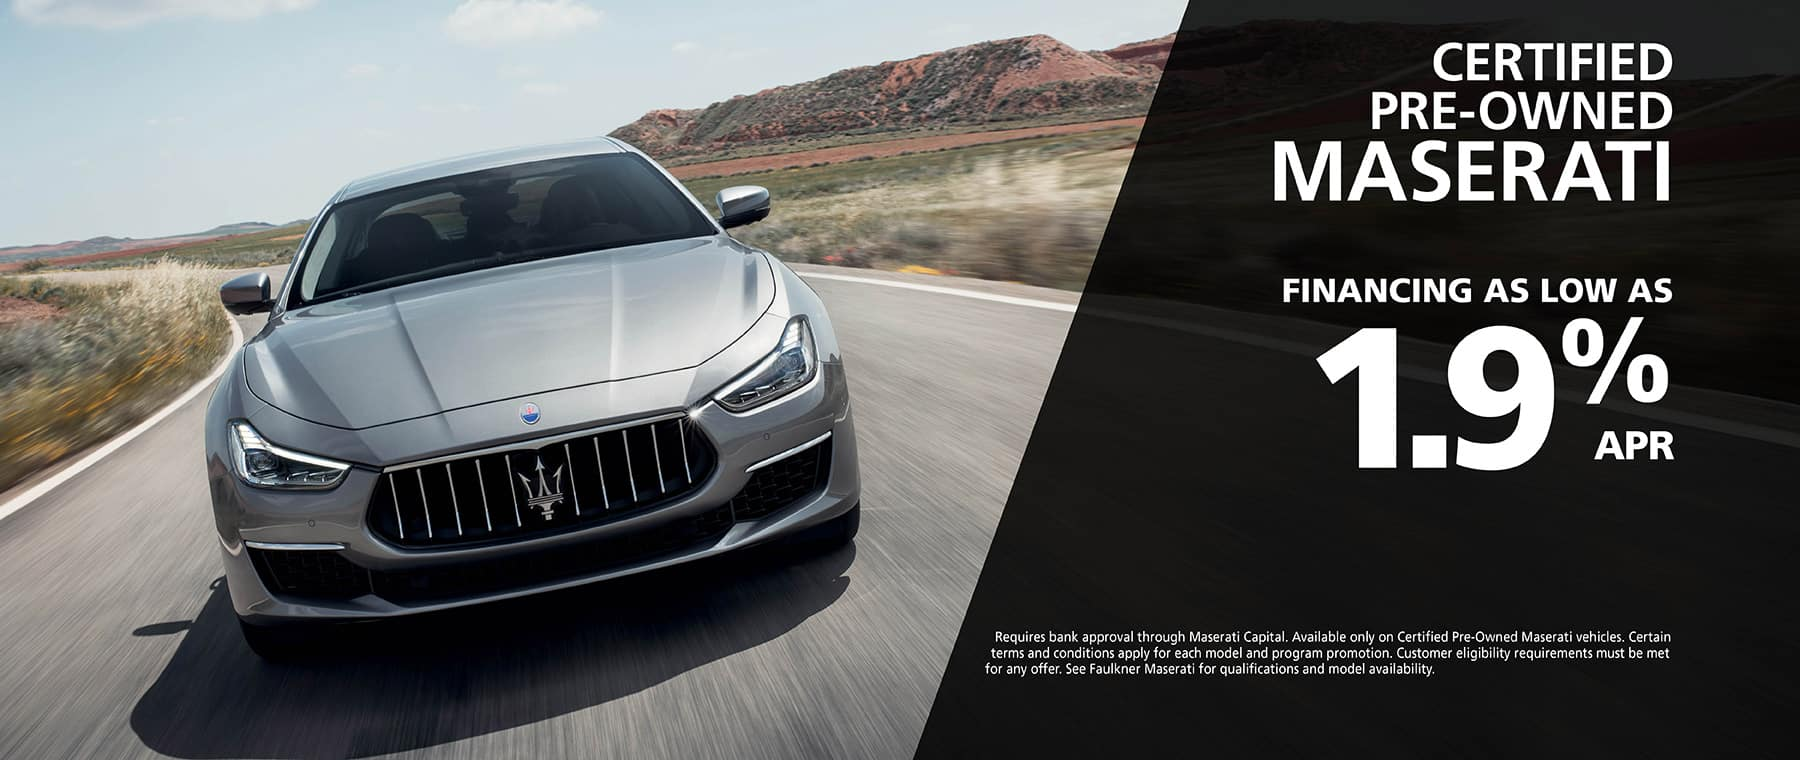 Shop Maserati Certified Pre-Owned